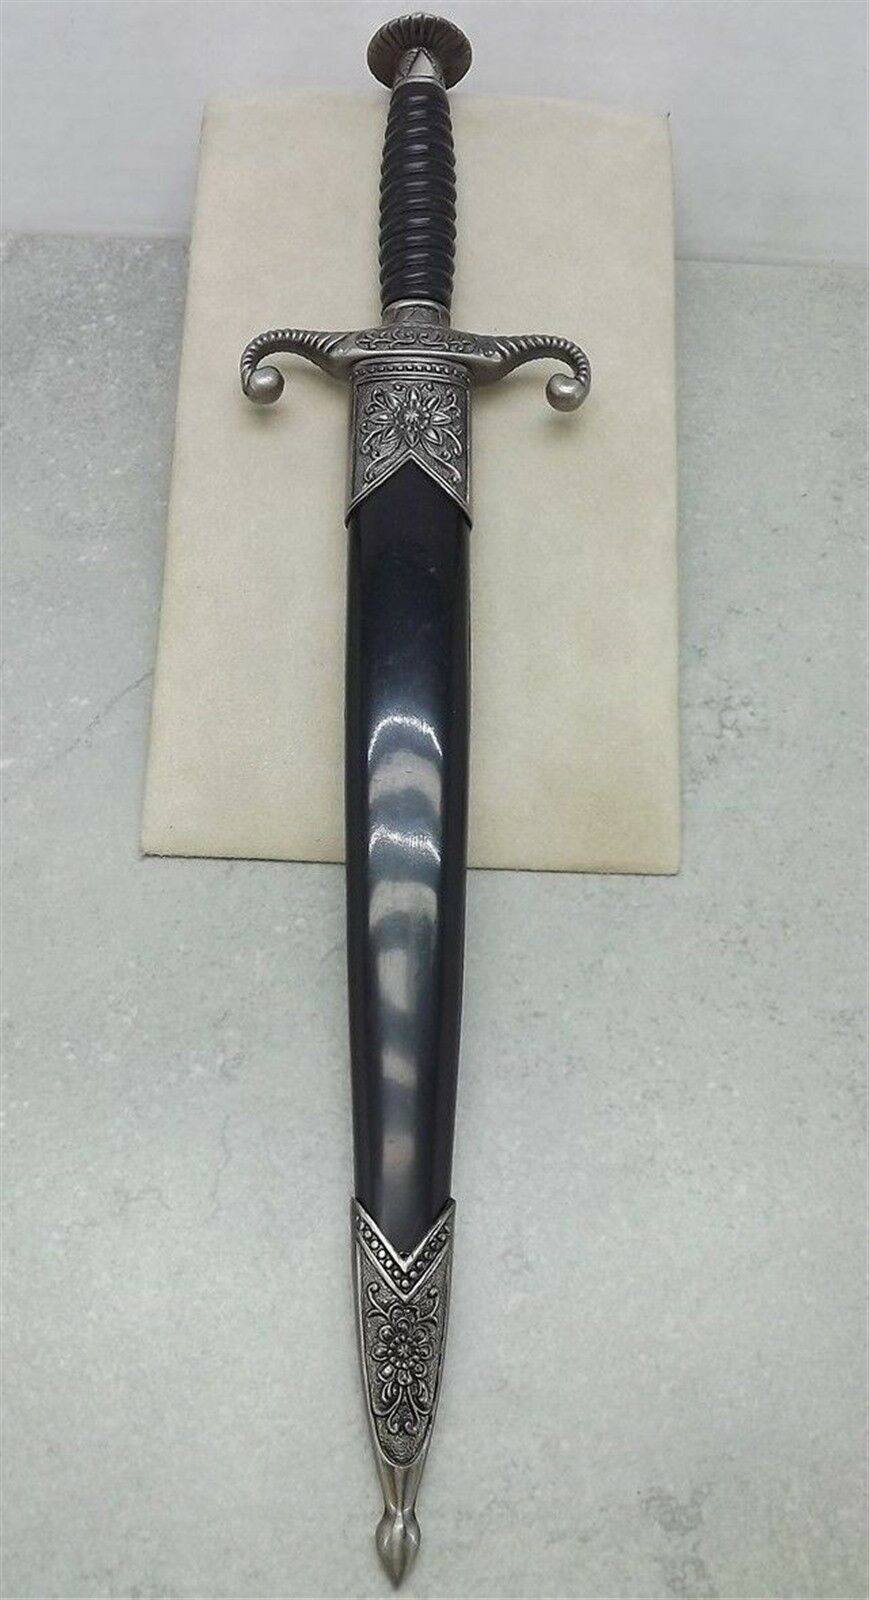 New ANCIENT STYLE KNIGHTS DAGGER Sword  With Sheath BRAND NEW 3